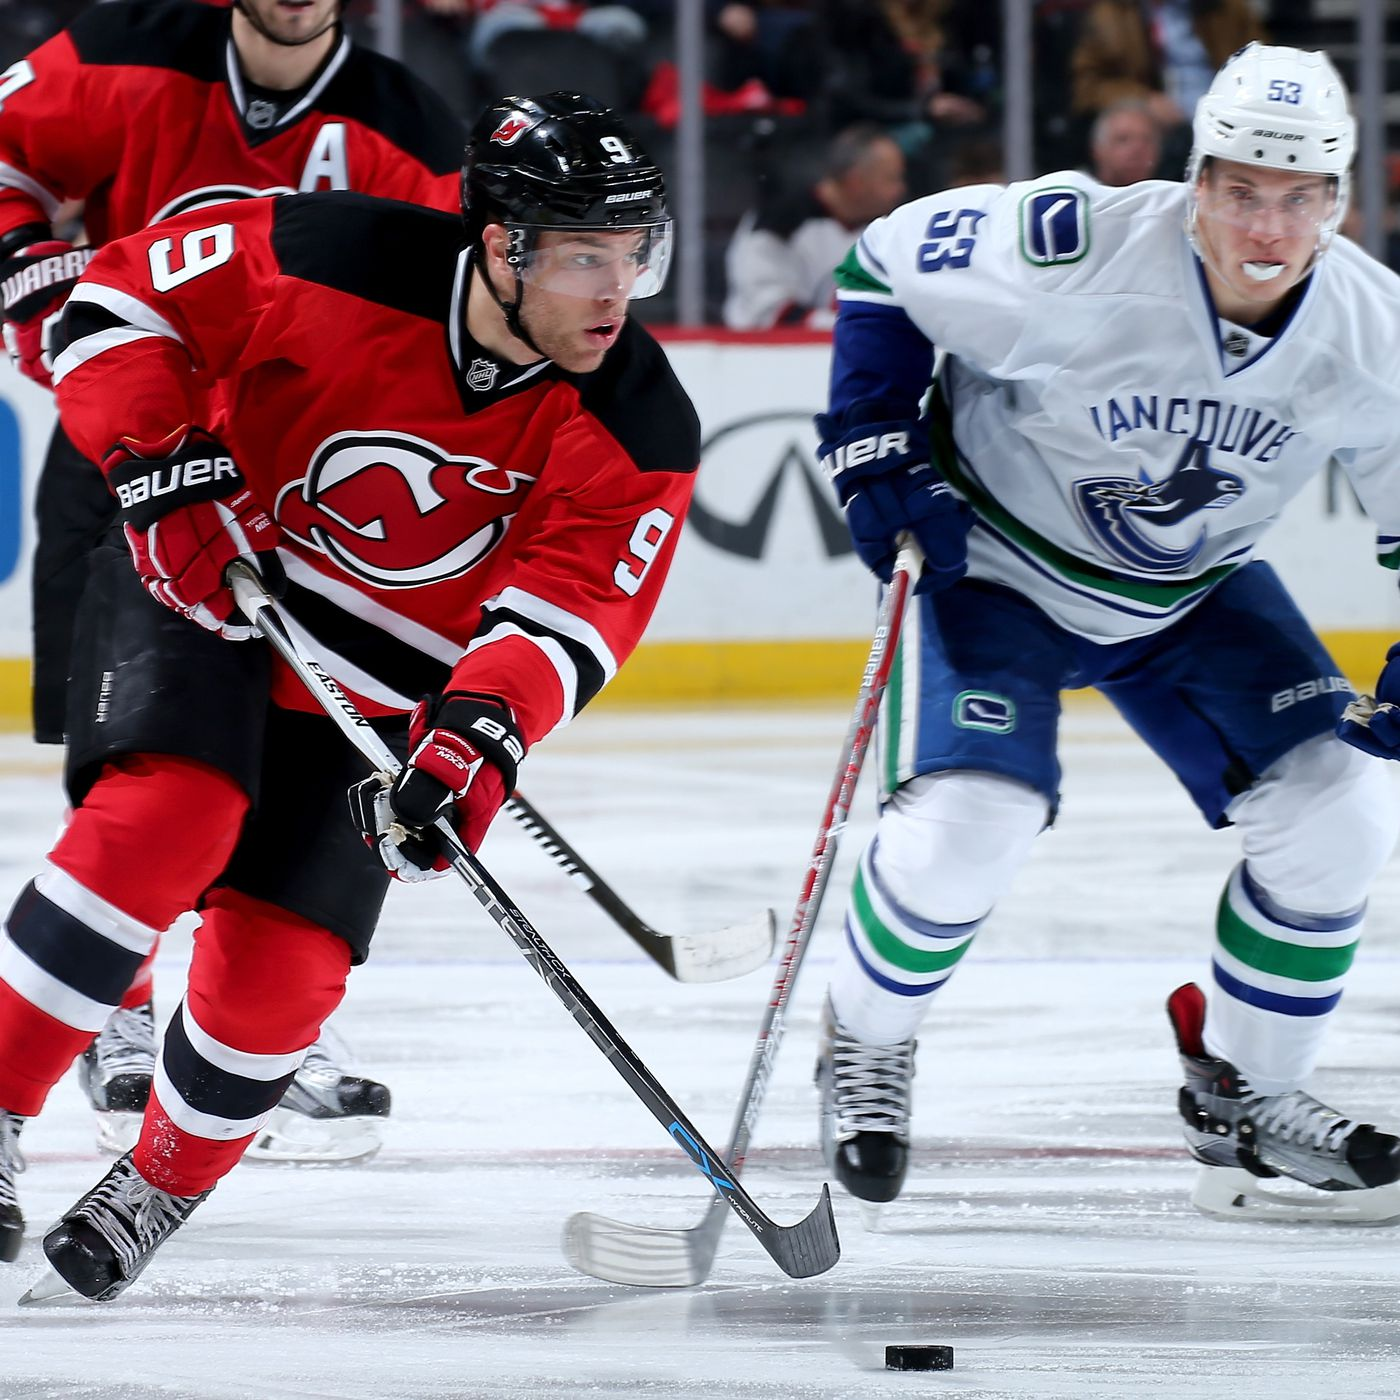 ... greece game preview 45 new jersey devils at vancouver canucks dc30e  3e0c1 27031d8f4